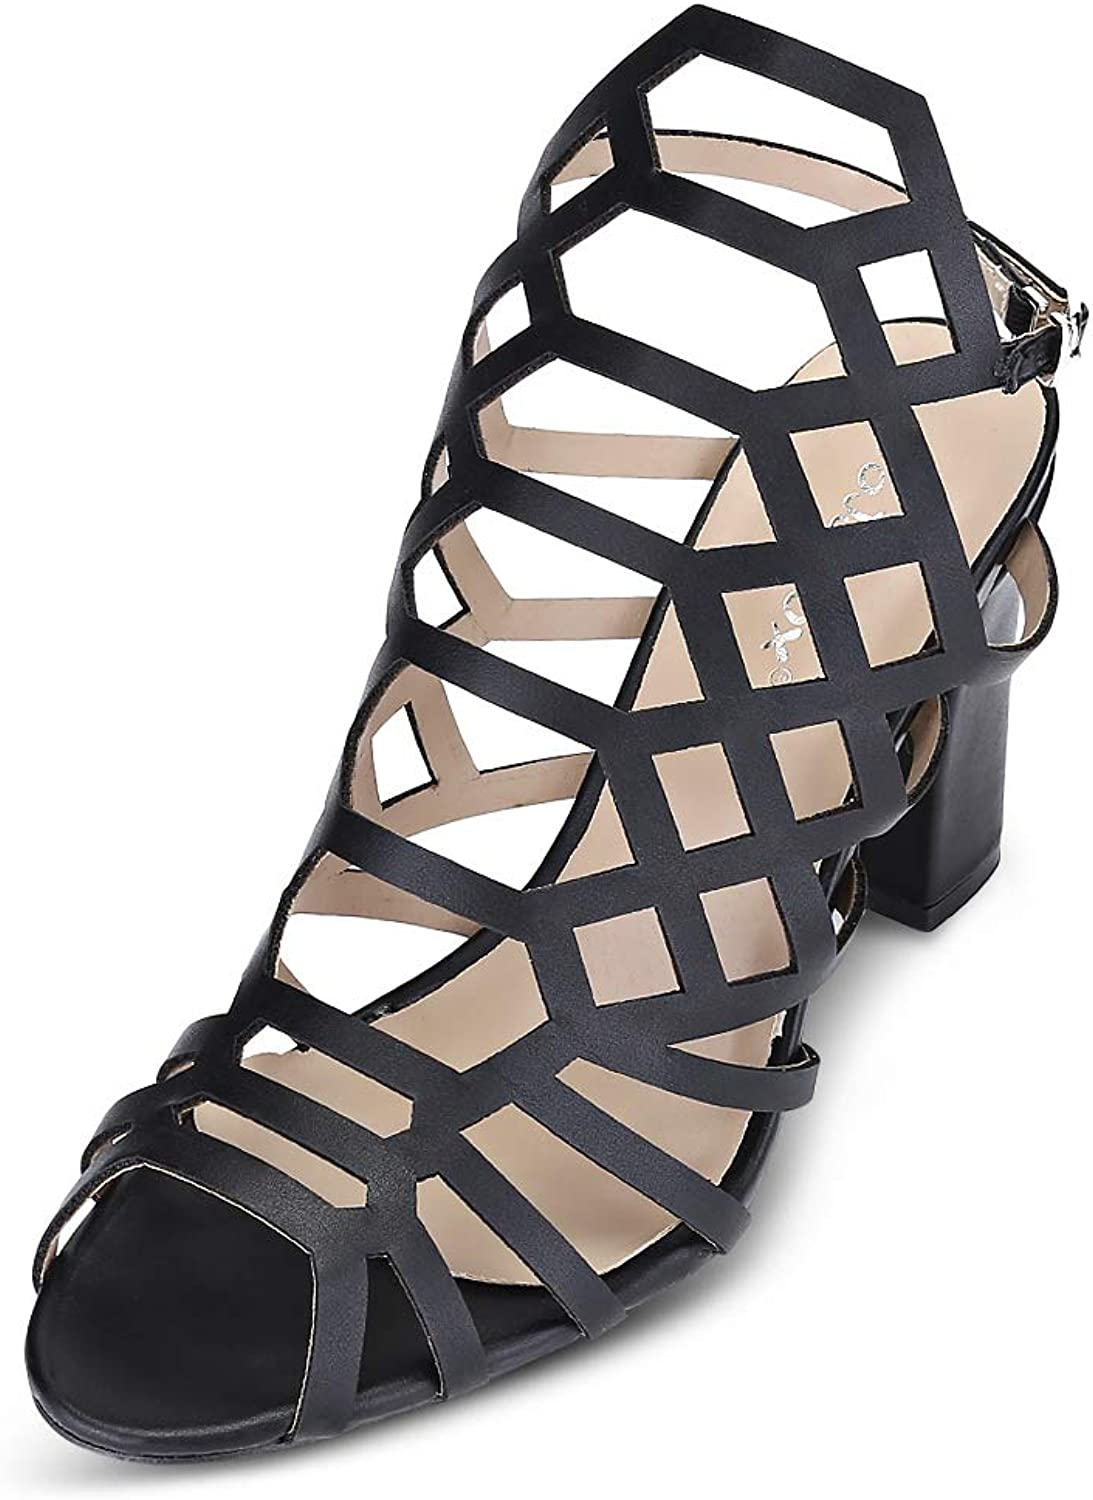 KCatsy Trendy Peep-Toe Hollow Out Chunky Heel Buckle Women Sandals